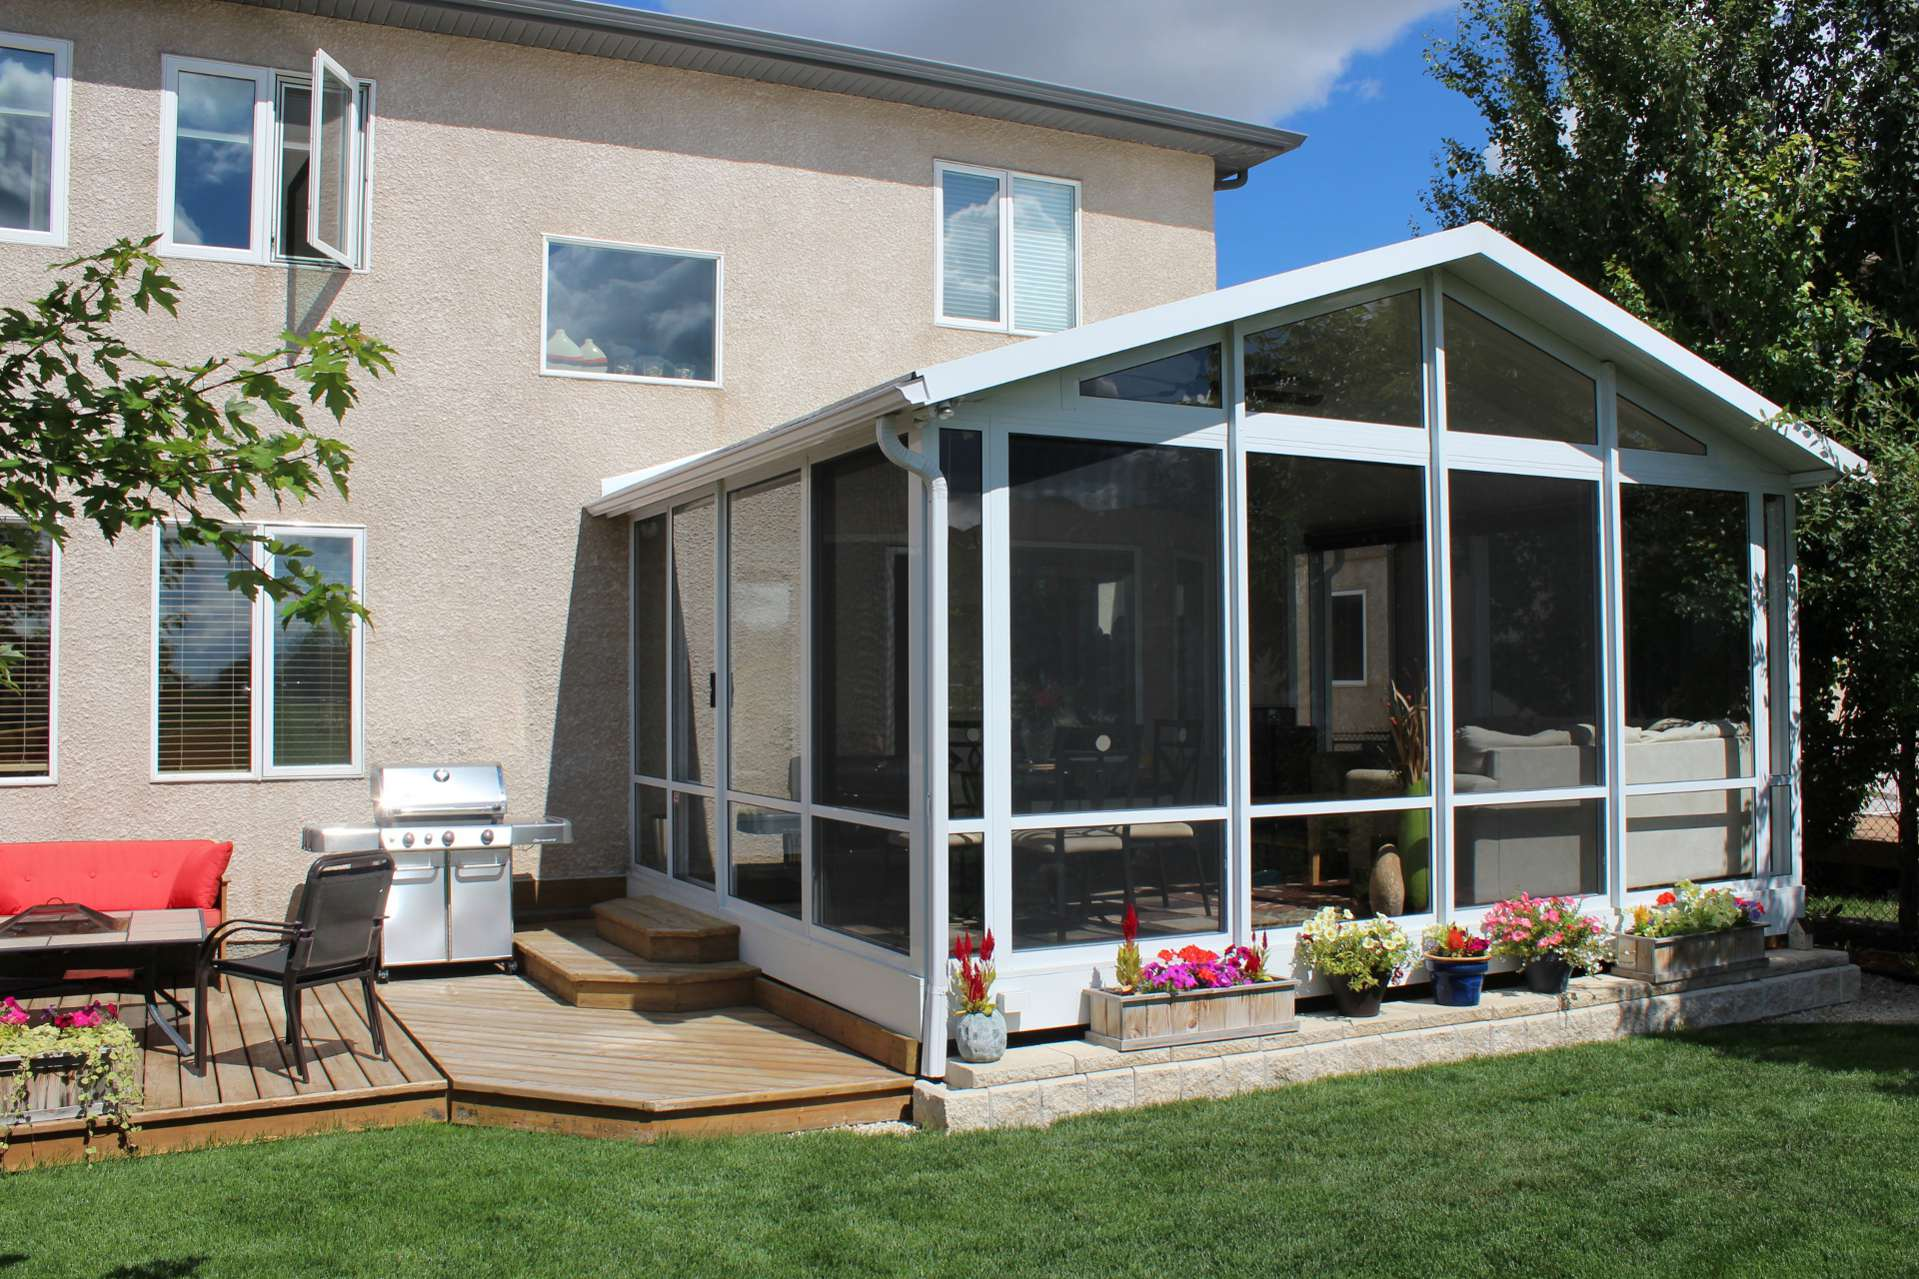 High Quality amp Maintenance Free Glastar Sunrooms